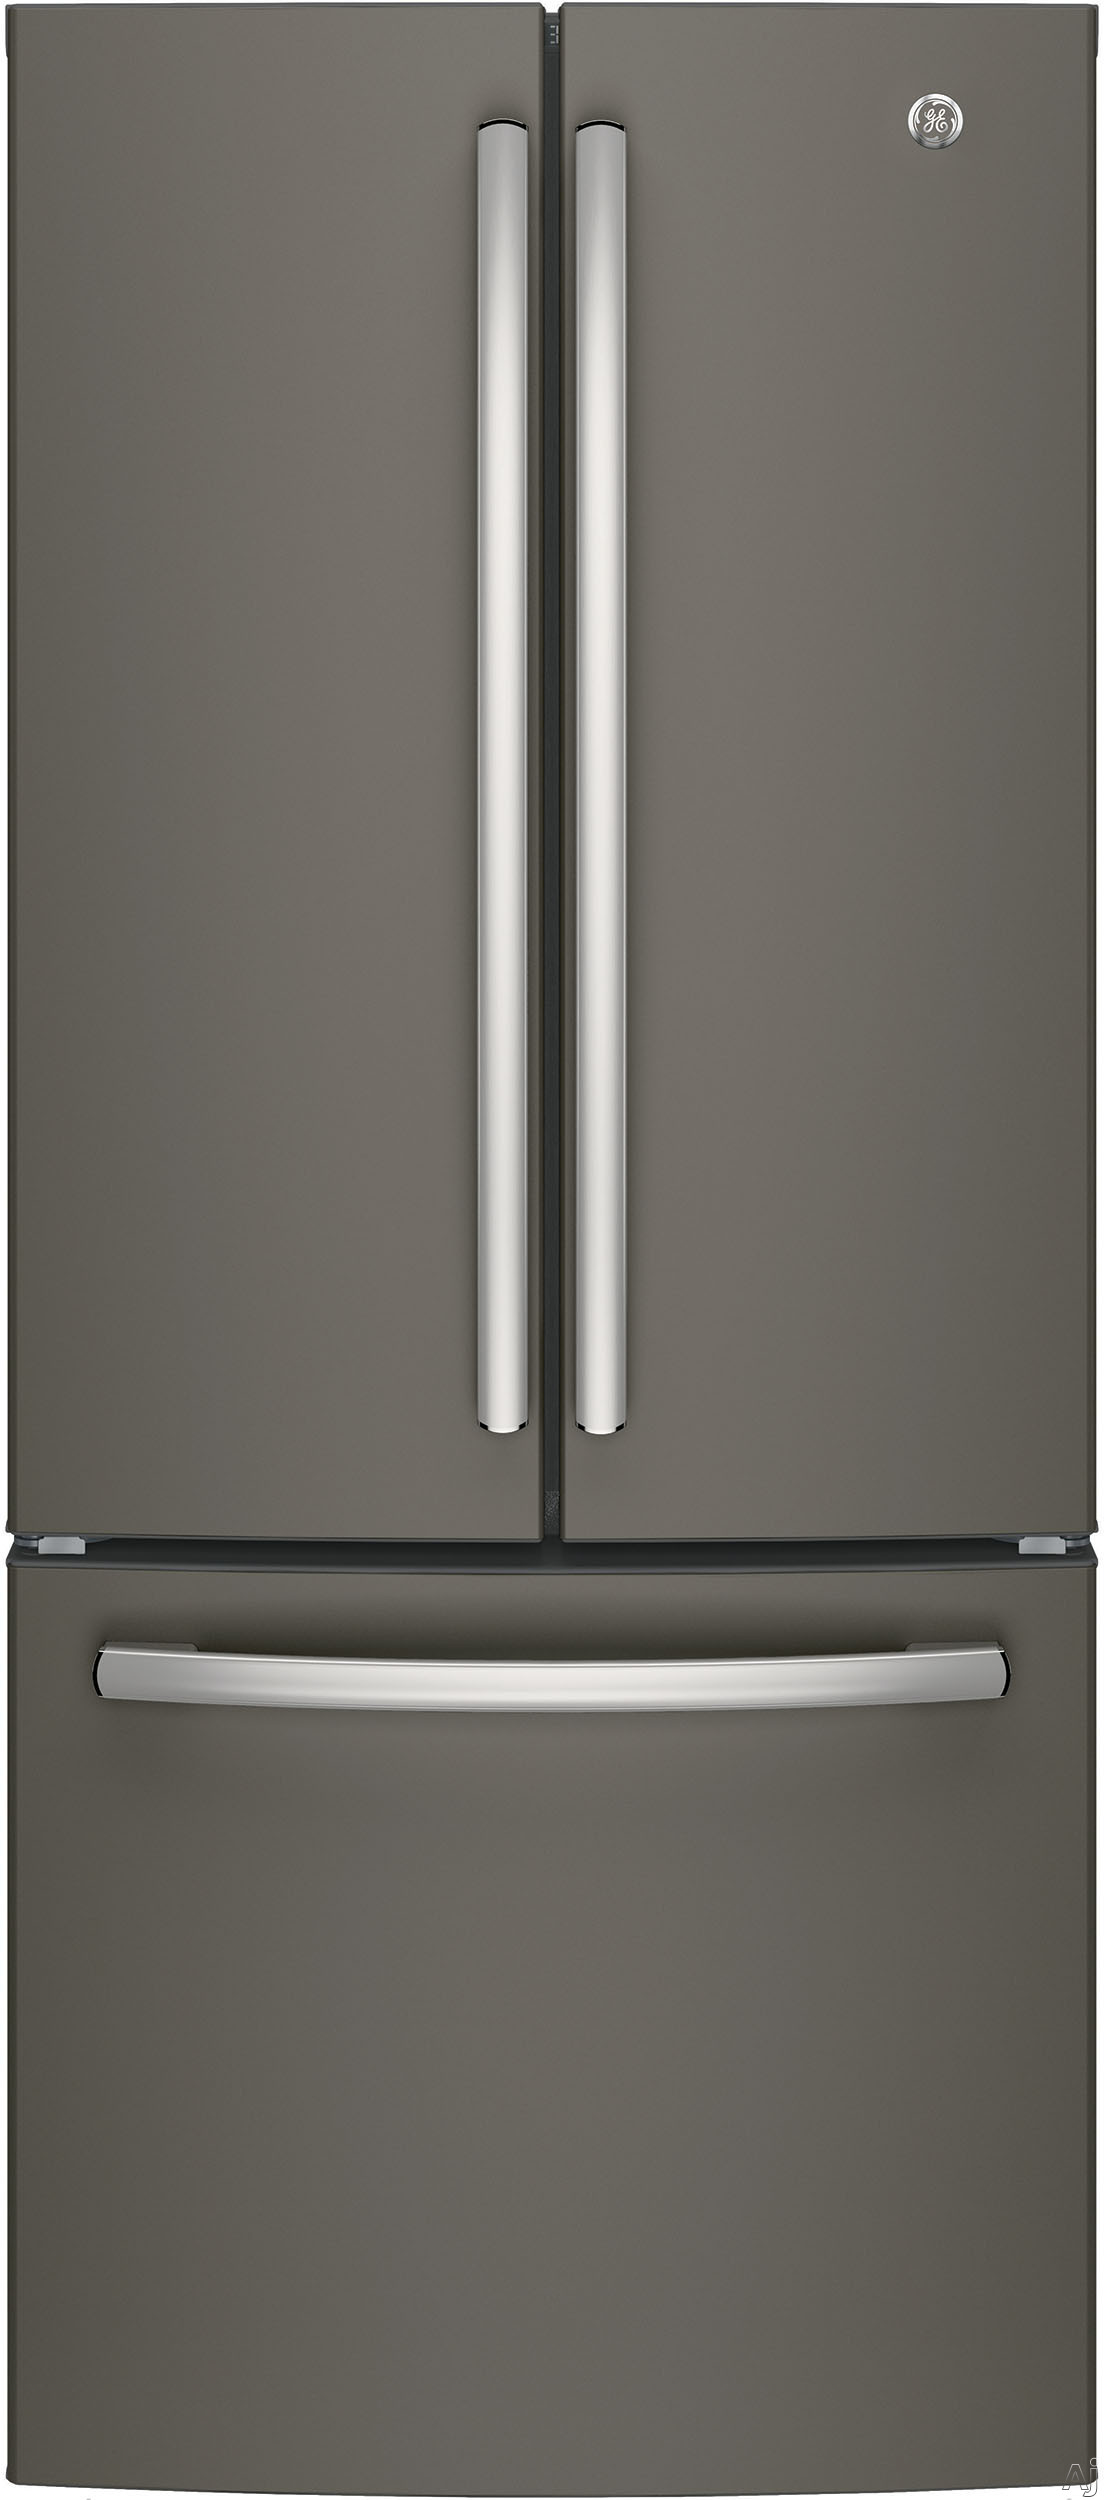 GE GNE21FMKES 30 Inch French Door Refrigerator with 20.8 Cu. Ft. Capacity, LED Lighting, Door Alarm, 2 Adjustable Shelves, 2 Humidity Controlled Drawers, 1 Adjustable Temperature Drawer, 8 Door Bins, 2 Freezer Drawers, Icemaker and Energy Star Qualified: Slate